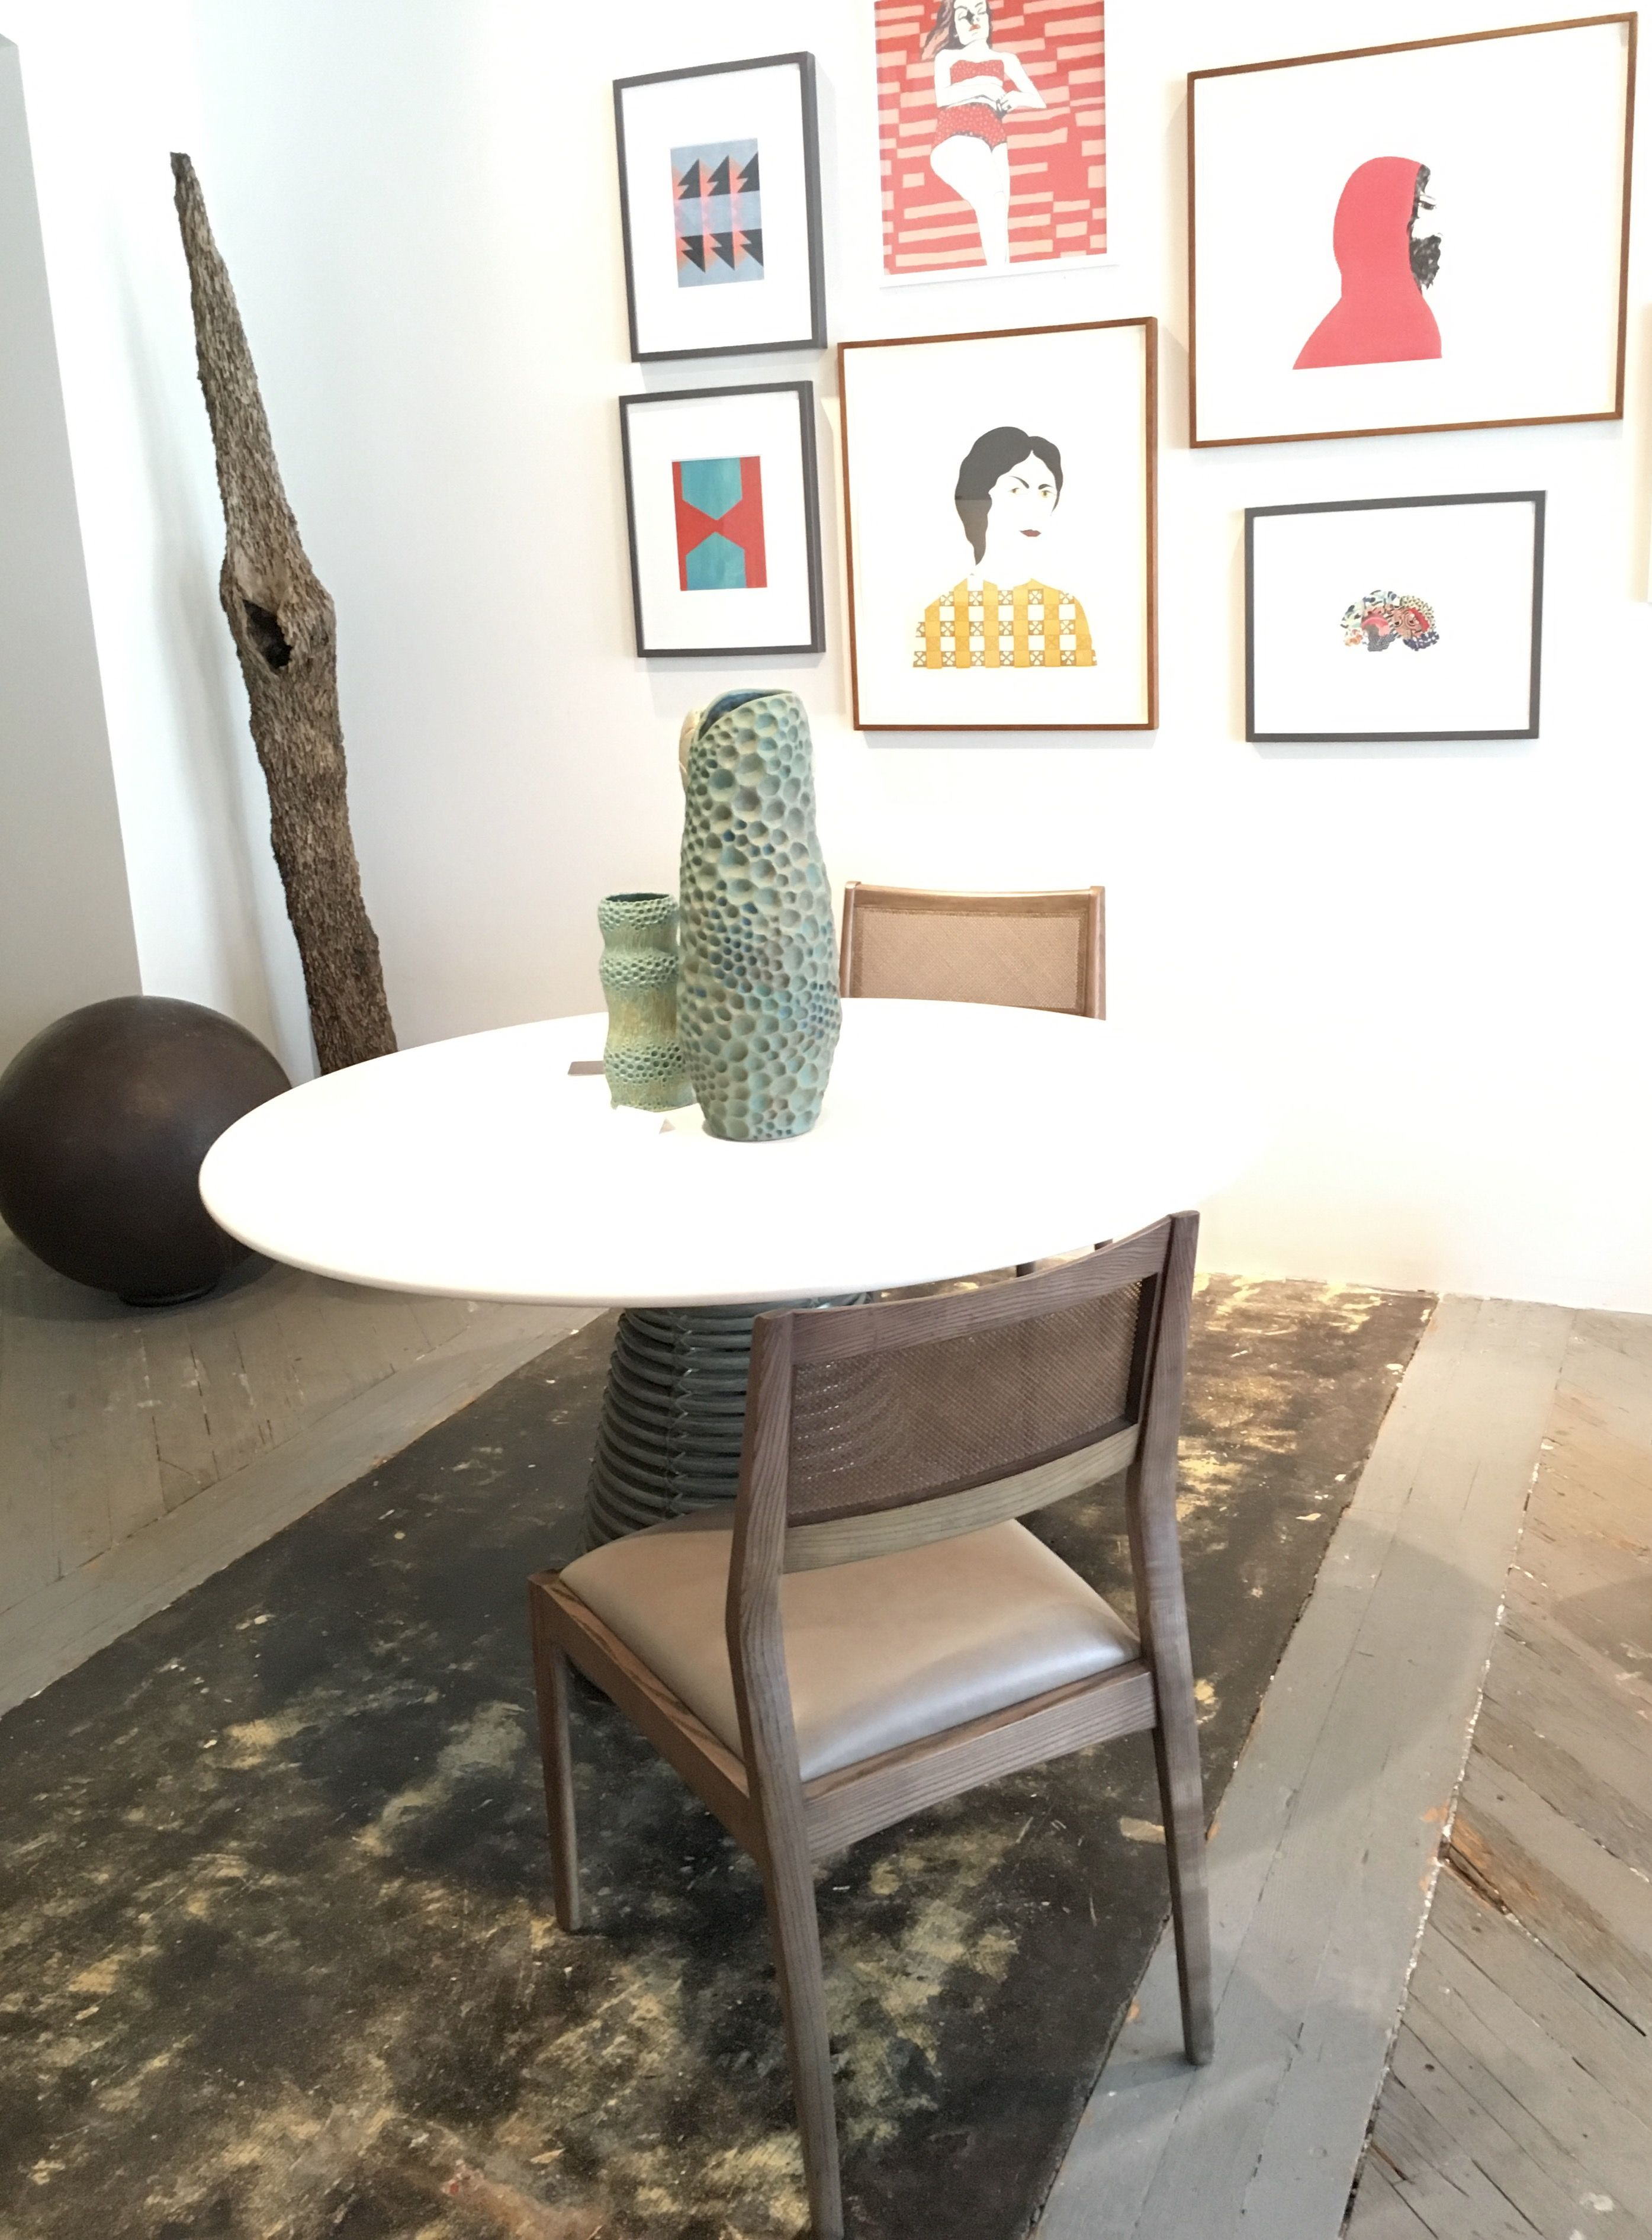 Photos Of My Recent Visit To The McGuire Headquarters And Showroom In San  Francisco.